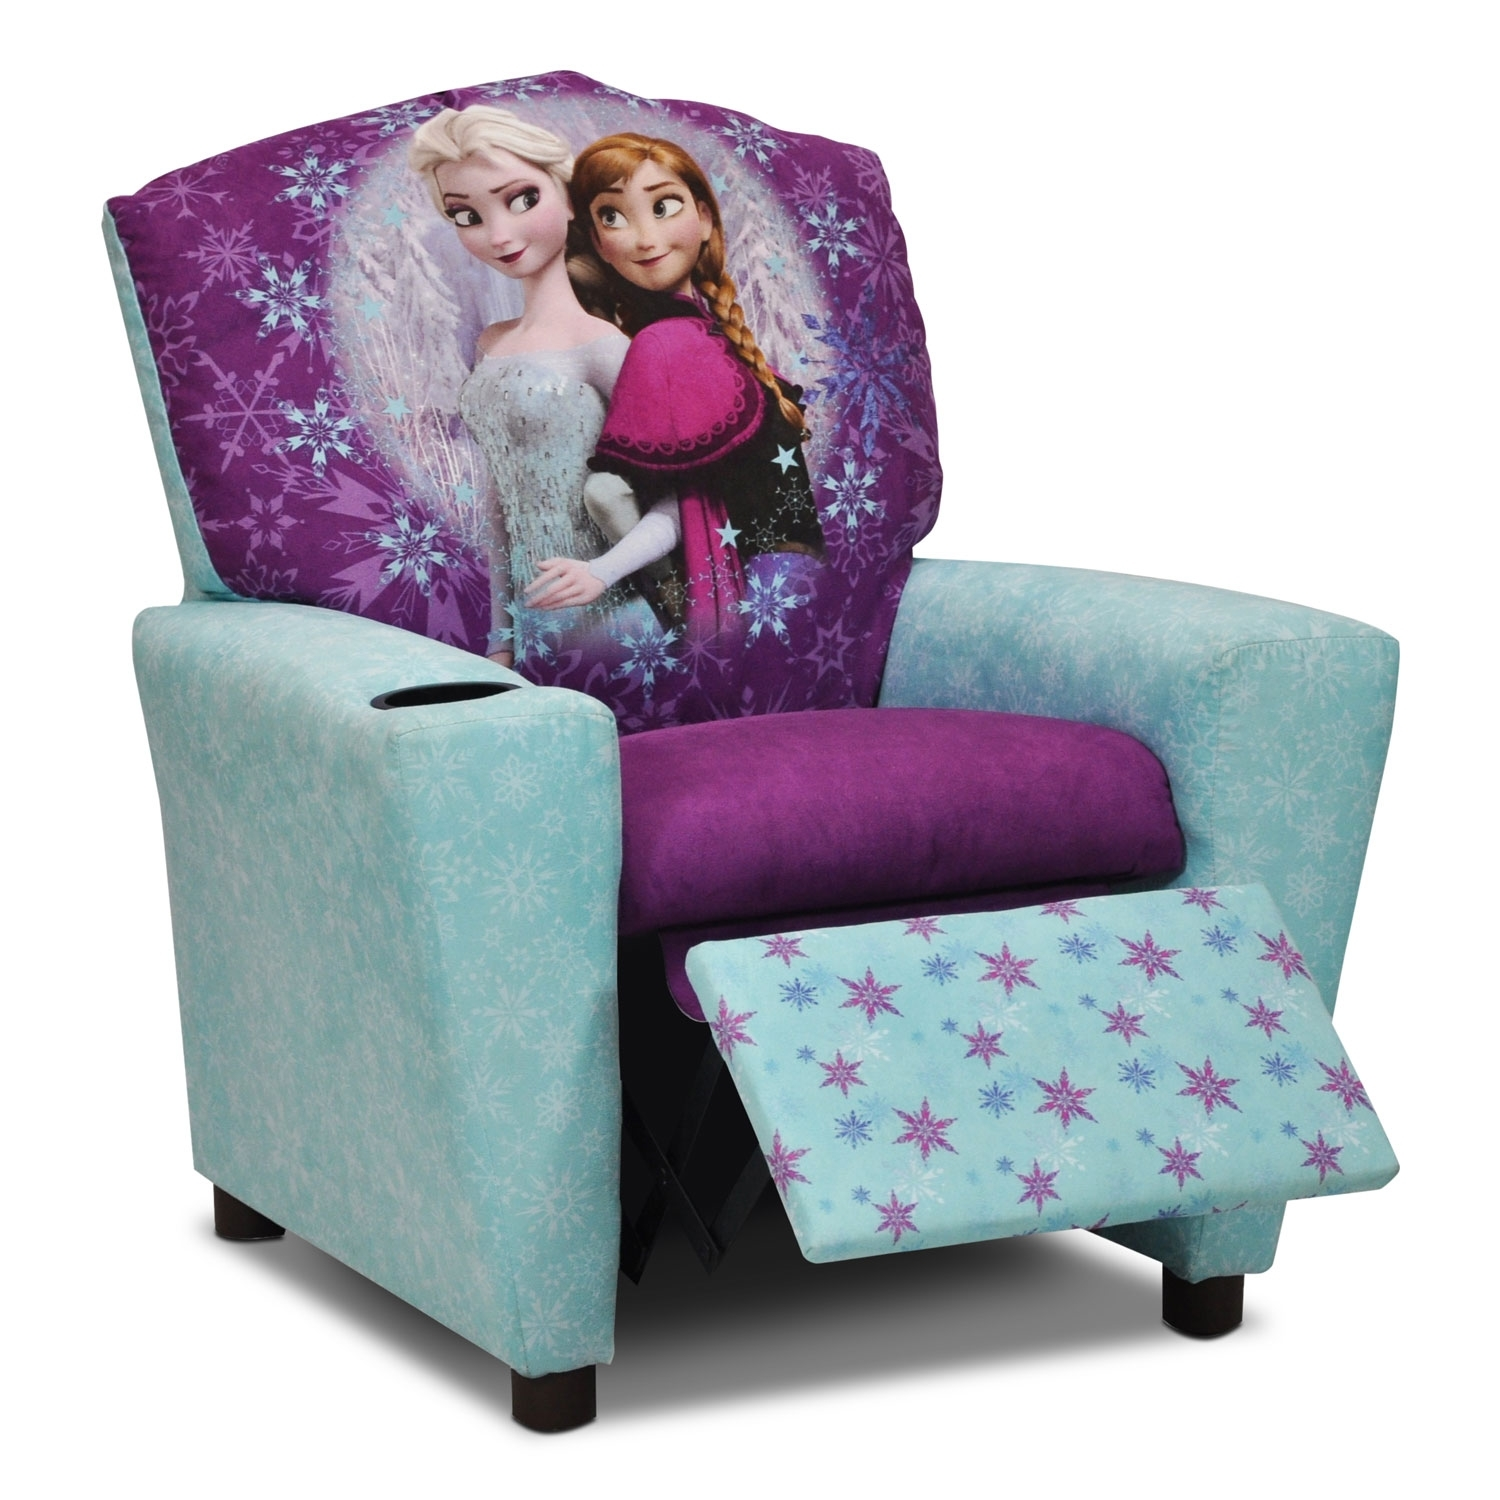 Sofa Chair For Kid Home Chair Designs Inside Disney Sofa Chairs (View 8 of 15)